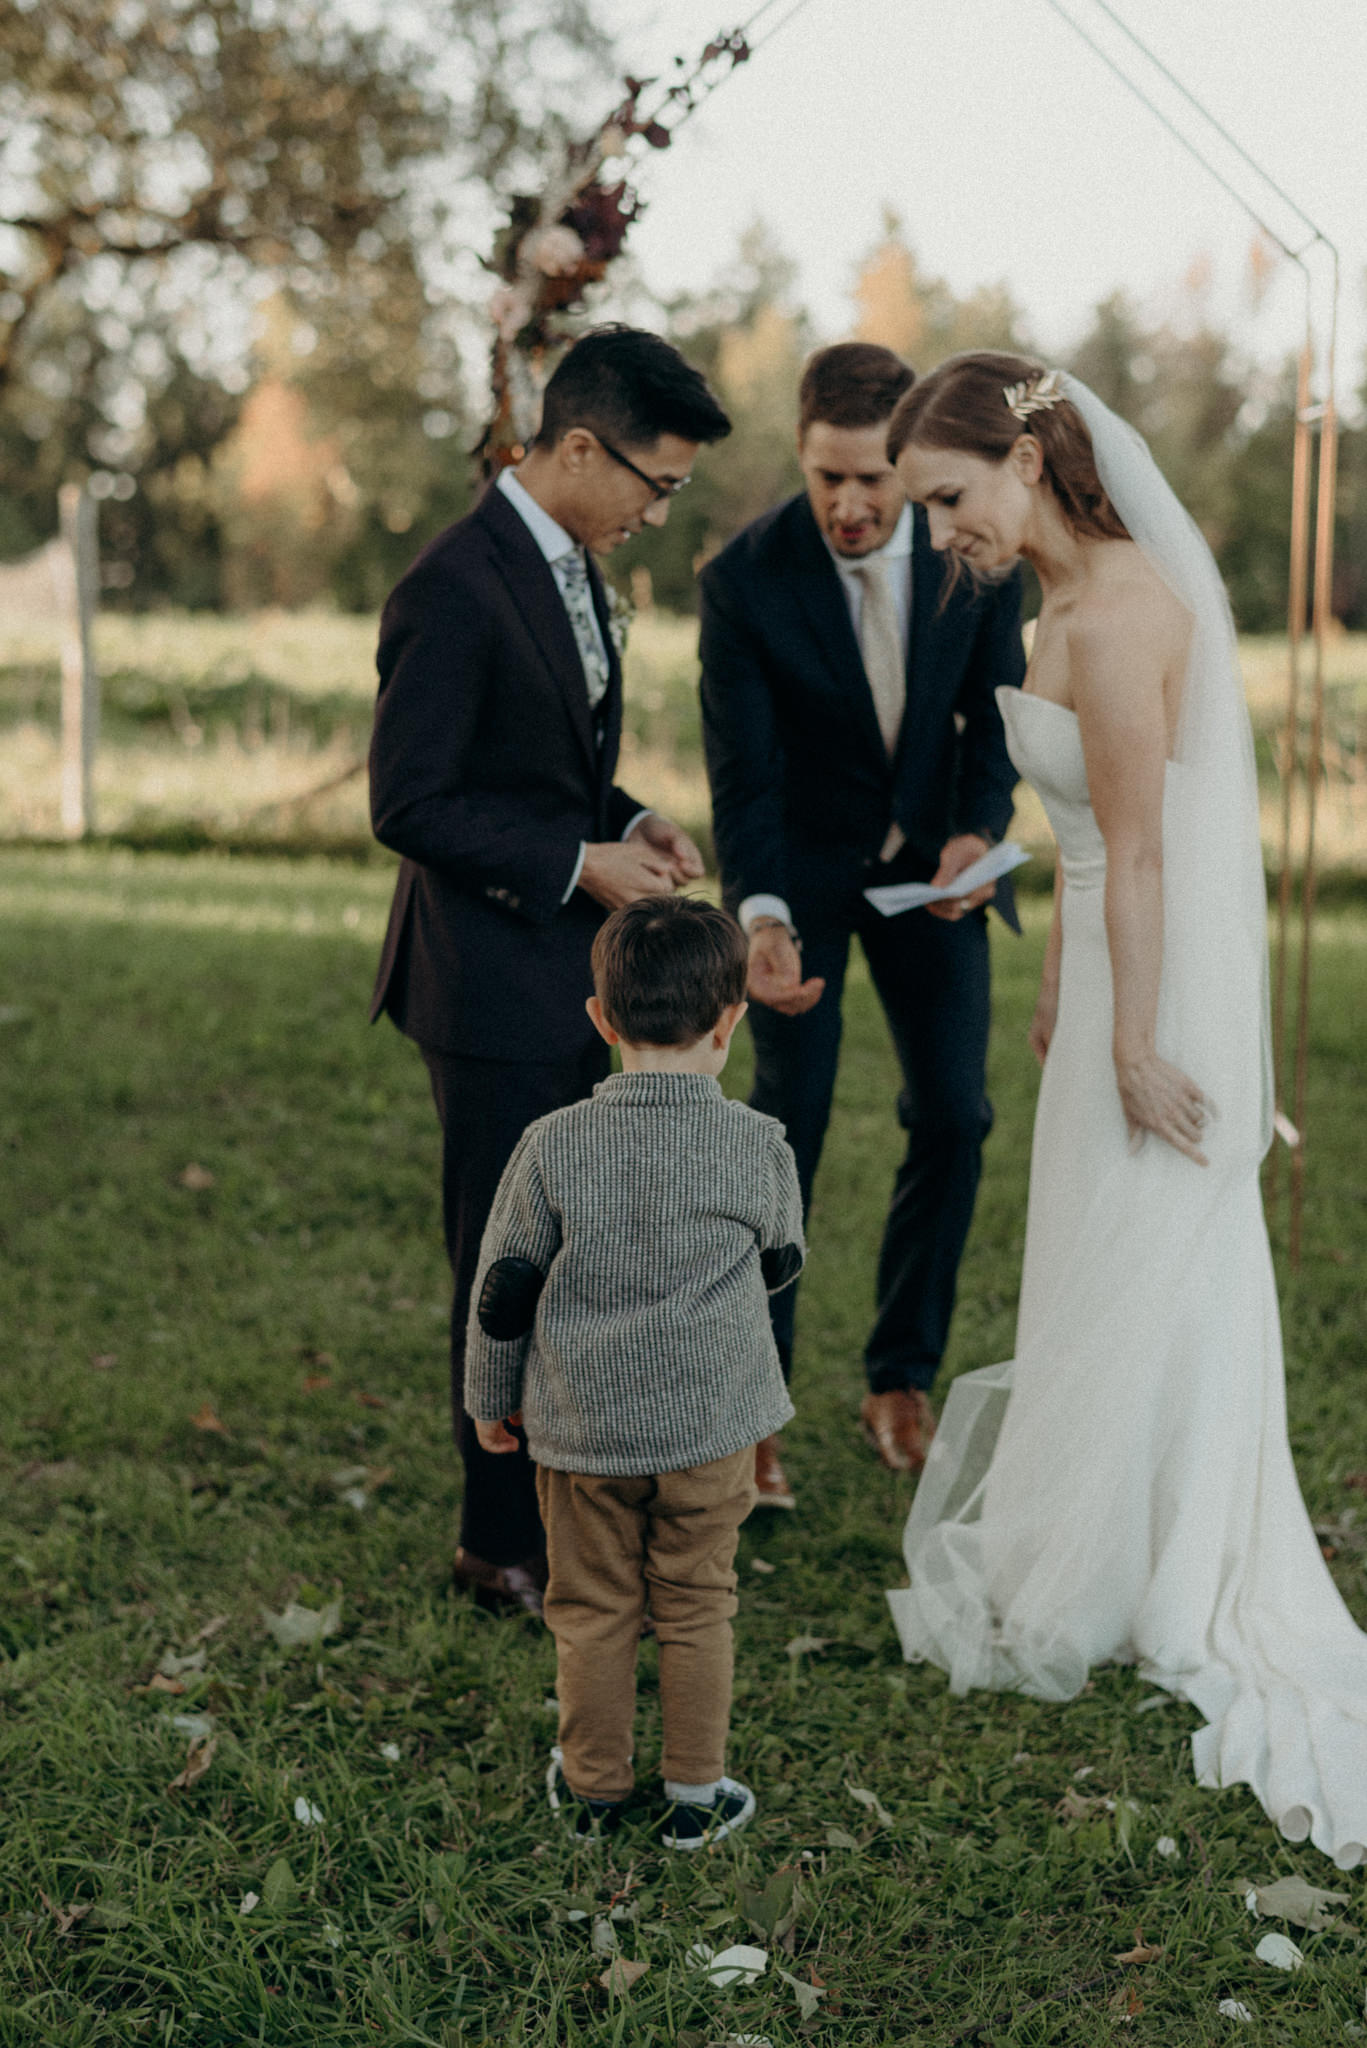 ring bearer bringing rings to couple during ceremony